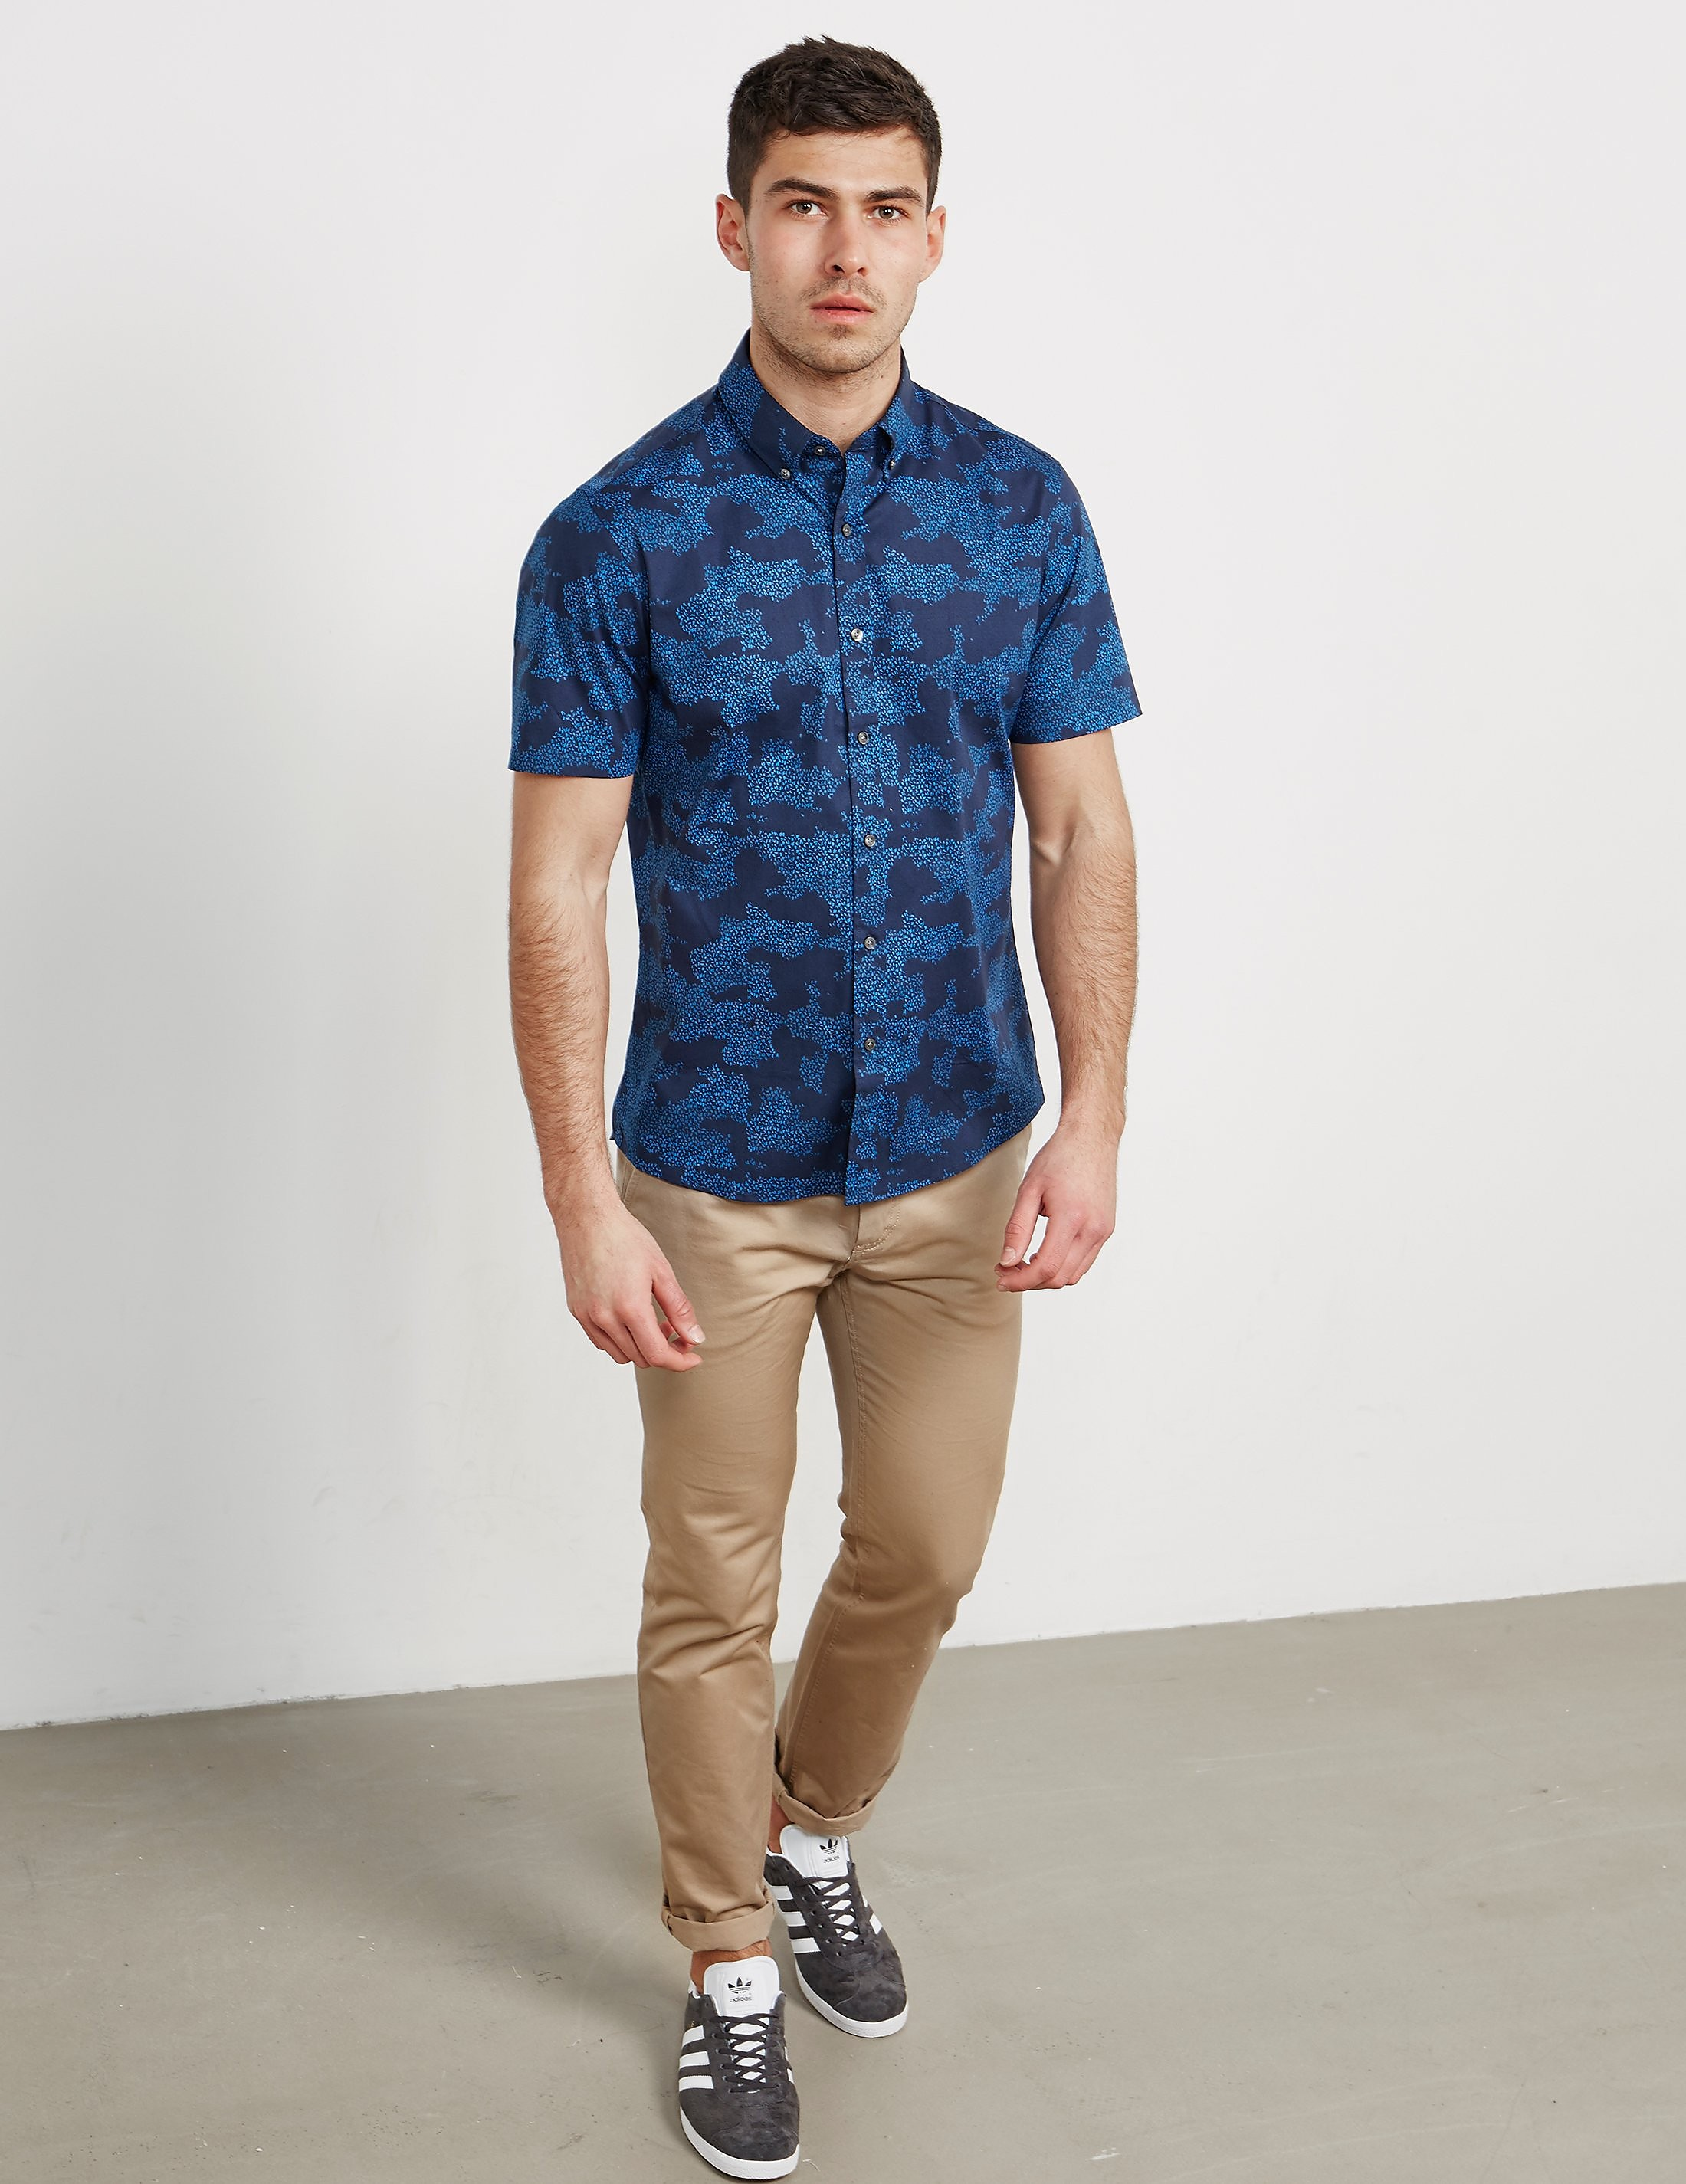 Michael Kors Dot Camo Short Sleeve Shirt